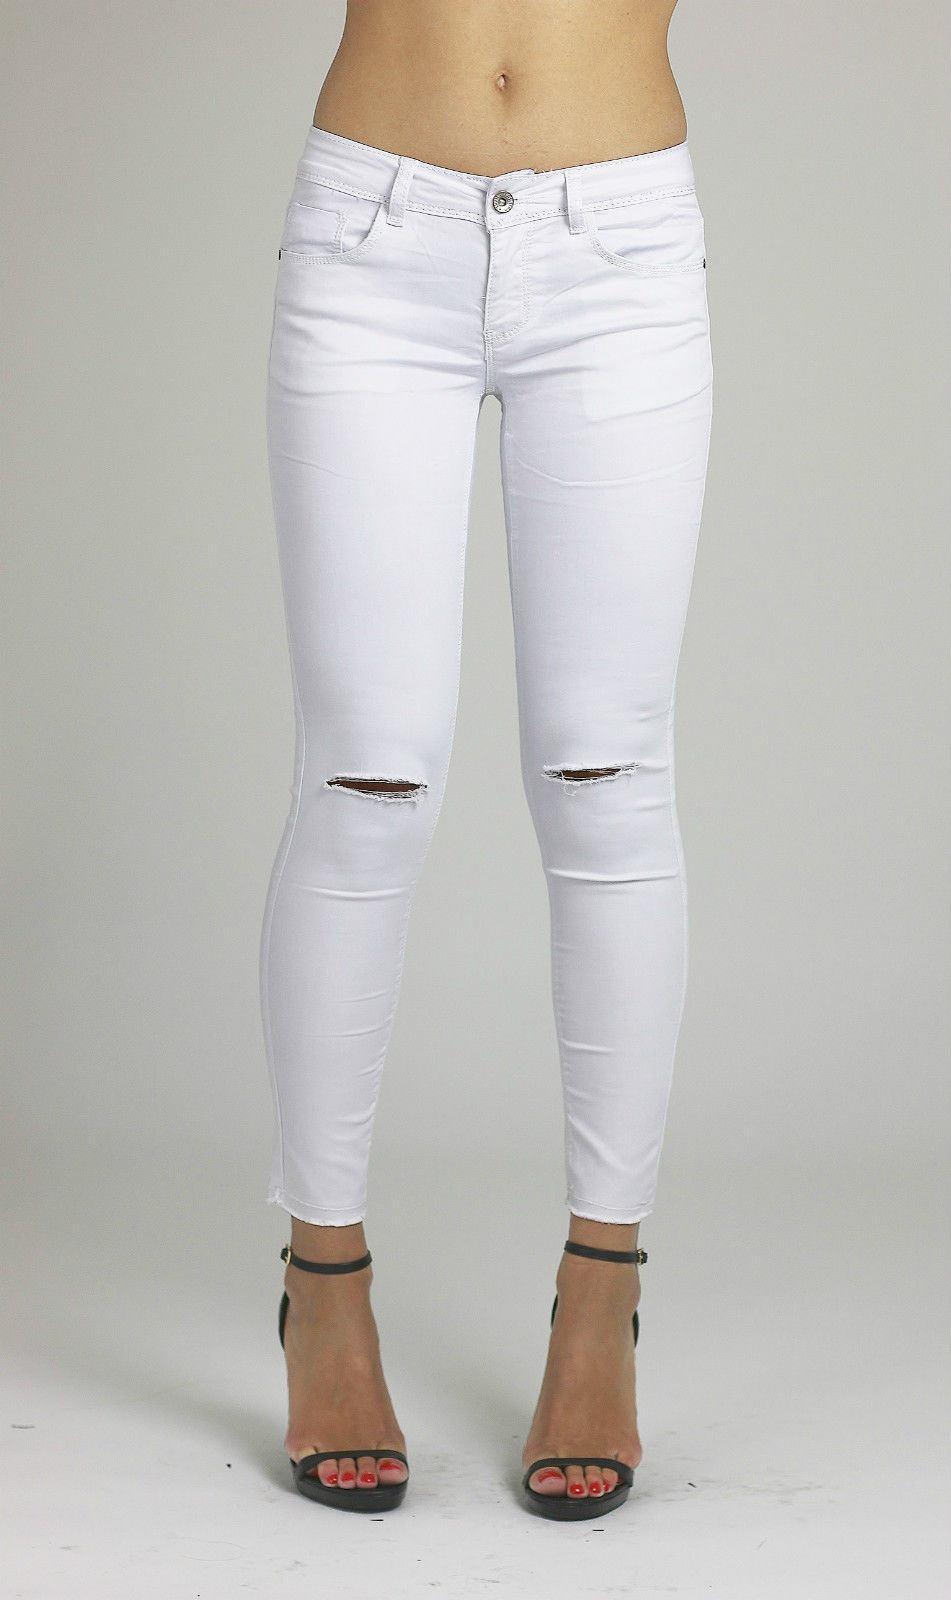 We even carry skinny jeans for women in black or white. Slim and Skinny Jean Features. Look for the right Old Navy women's skinny jeans for you in our selection. Denim with added stretch helps shape your figure while creating a smooth look. Copper rivets add a touch of classic design in addition to bringing strength to garment construction.